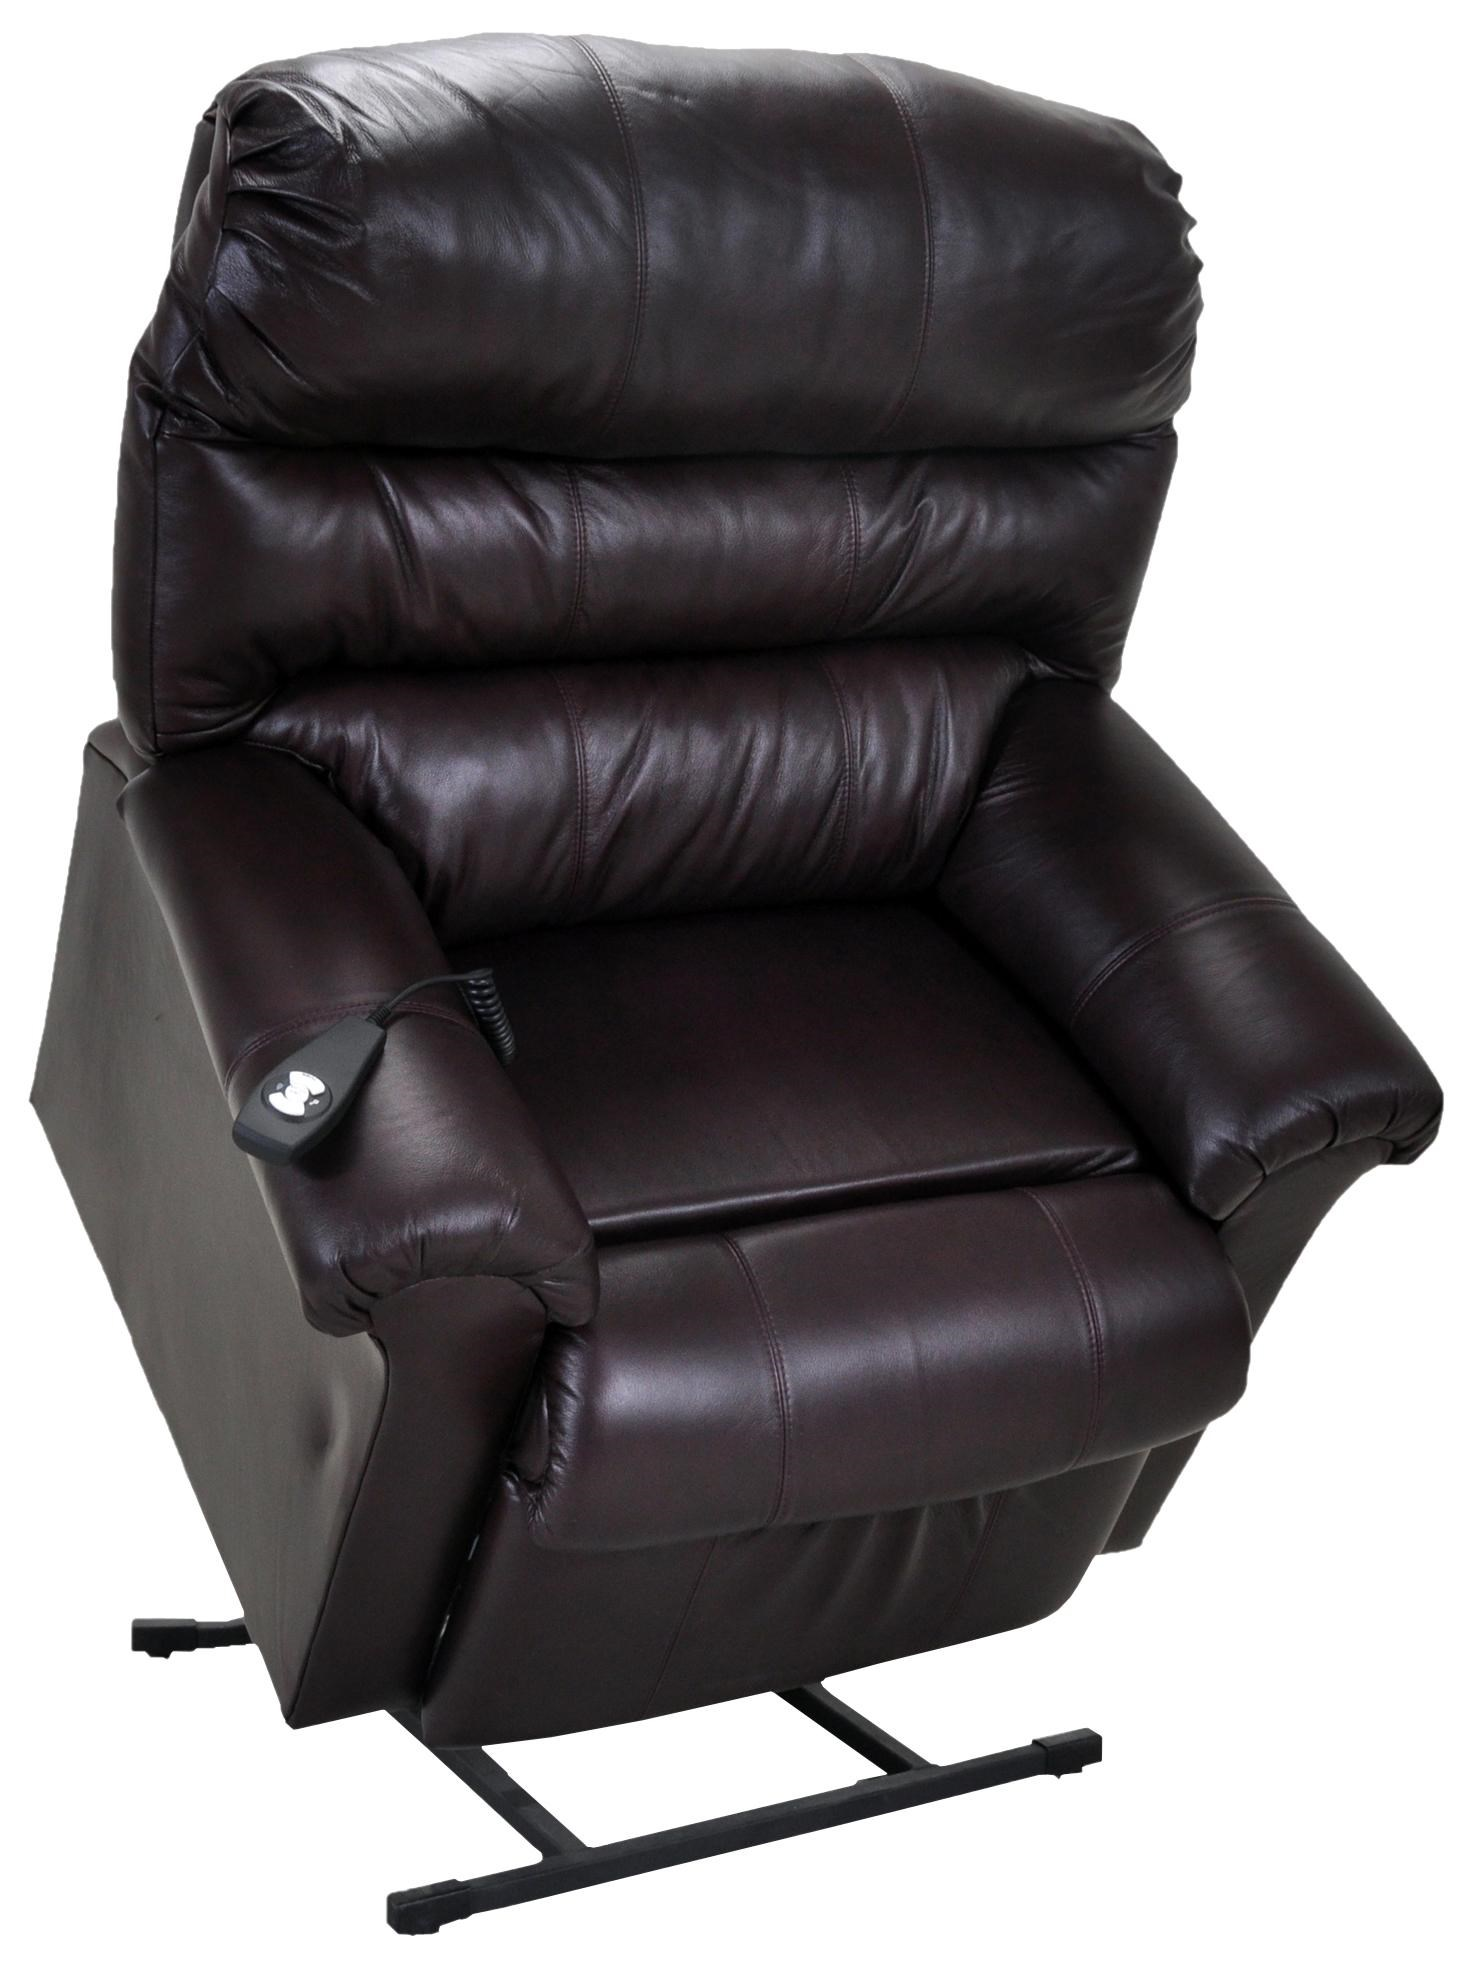 Franklin Lift and Power Recliners Chocolate Leather Lift Chair - Great American Home Store ...